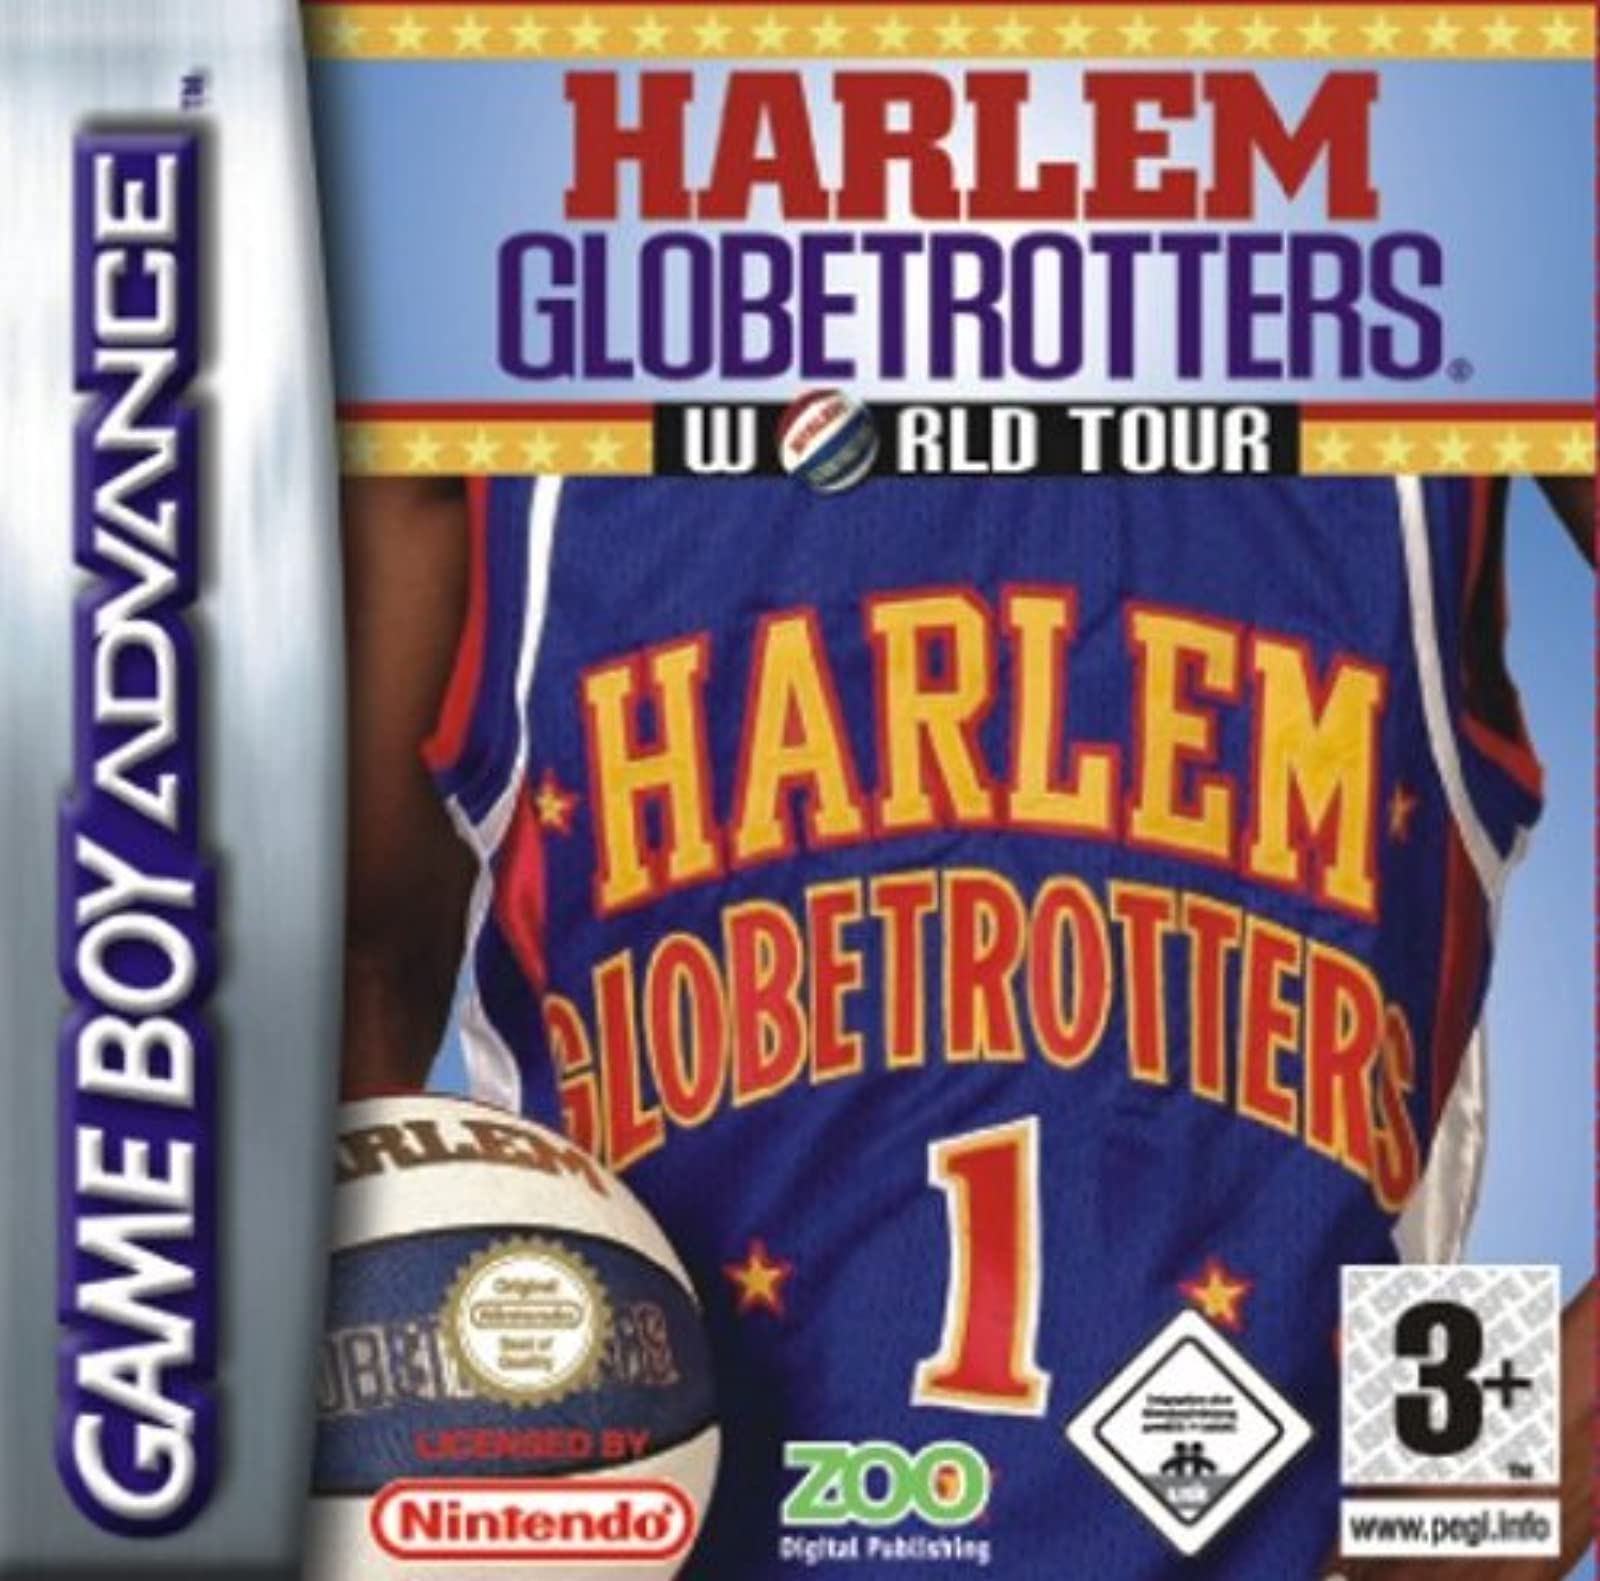 Harlem Globetrotters World Tour GBA For GBA Gameboy Advance